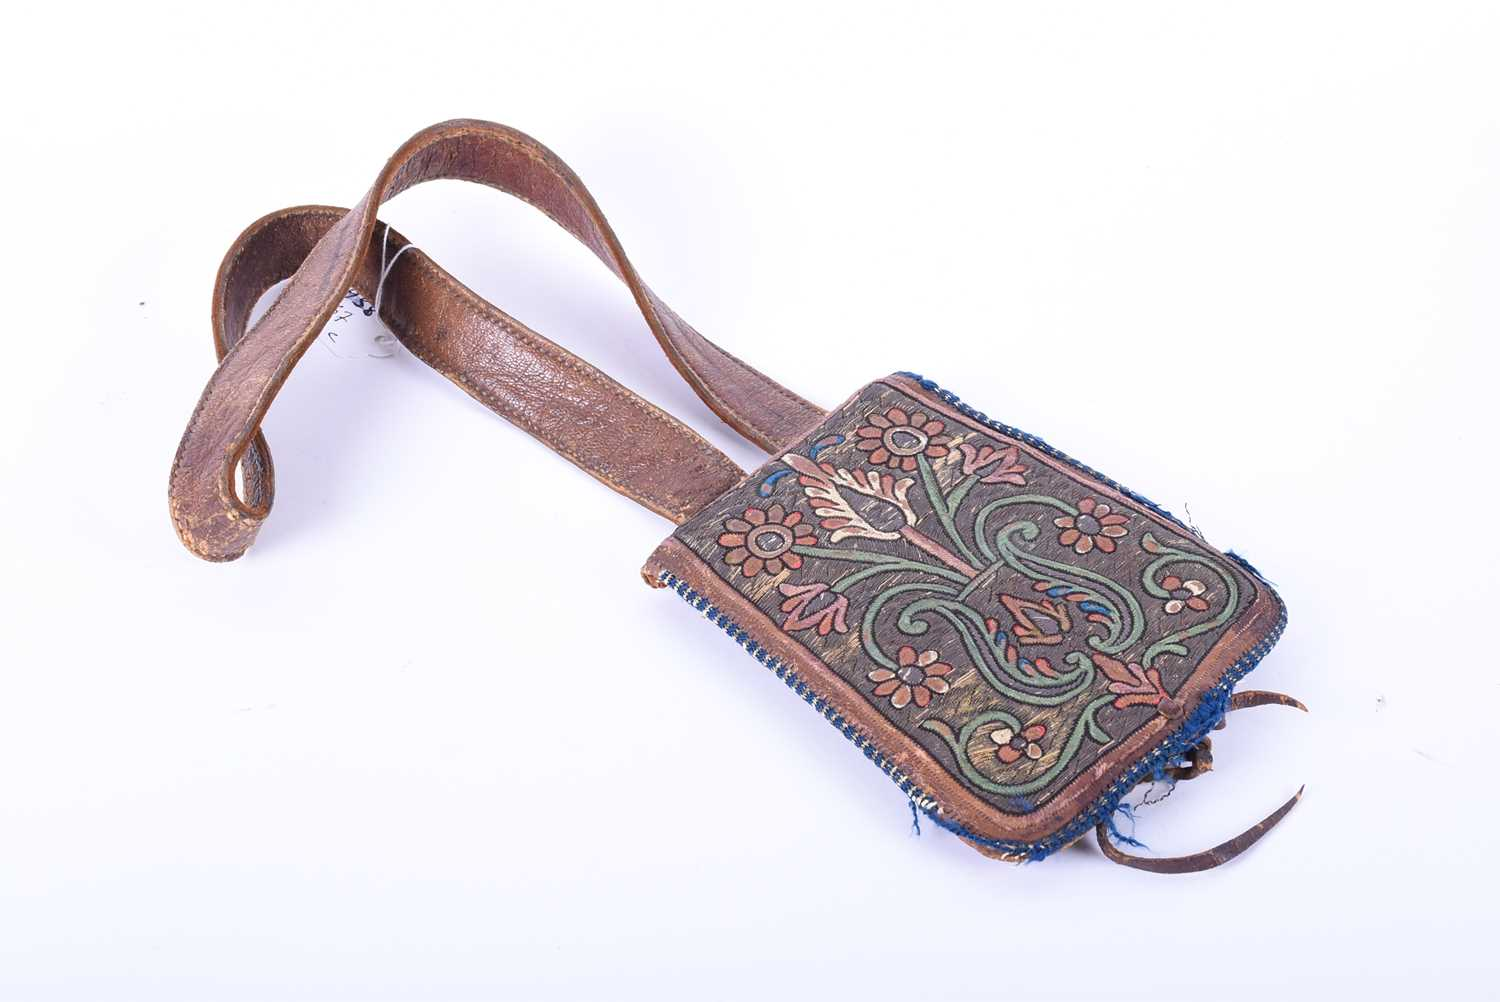 Lot 317 - A Persian leather shoulder bag/purse, with coloured thread floral decoration against a gilt thread